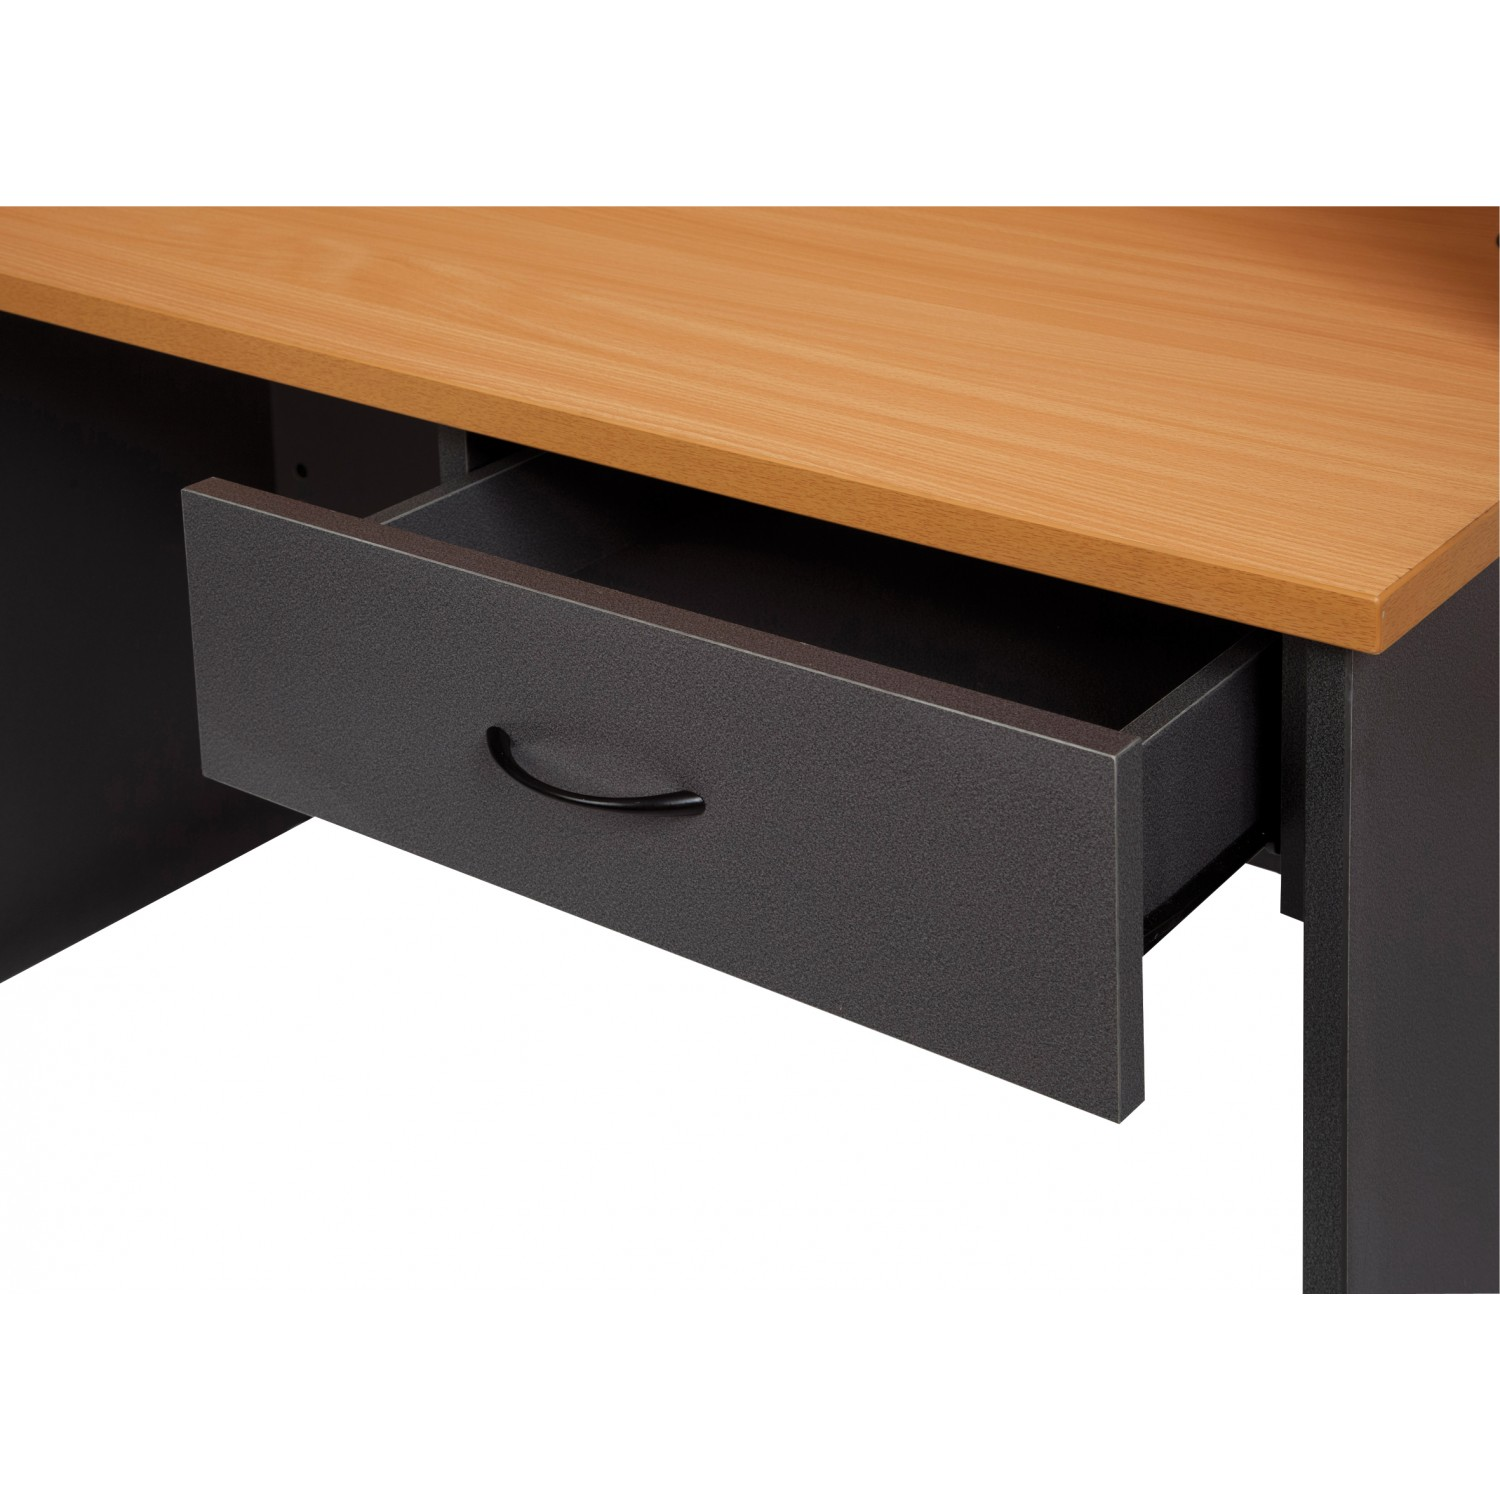 Single Drawer Fixed Pedestal Office Furniture Since 1990